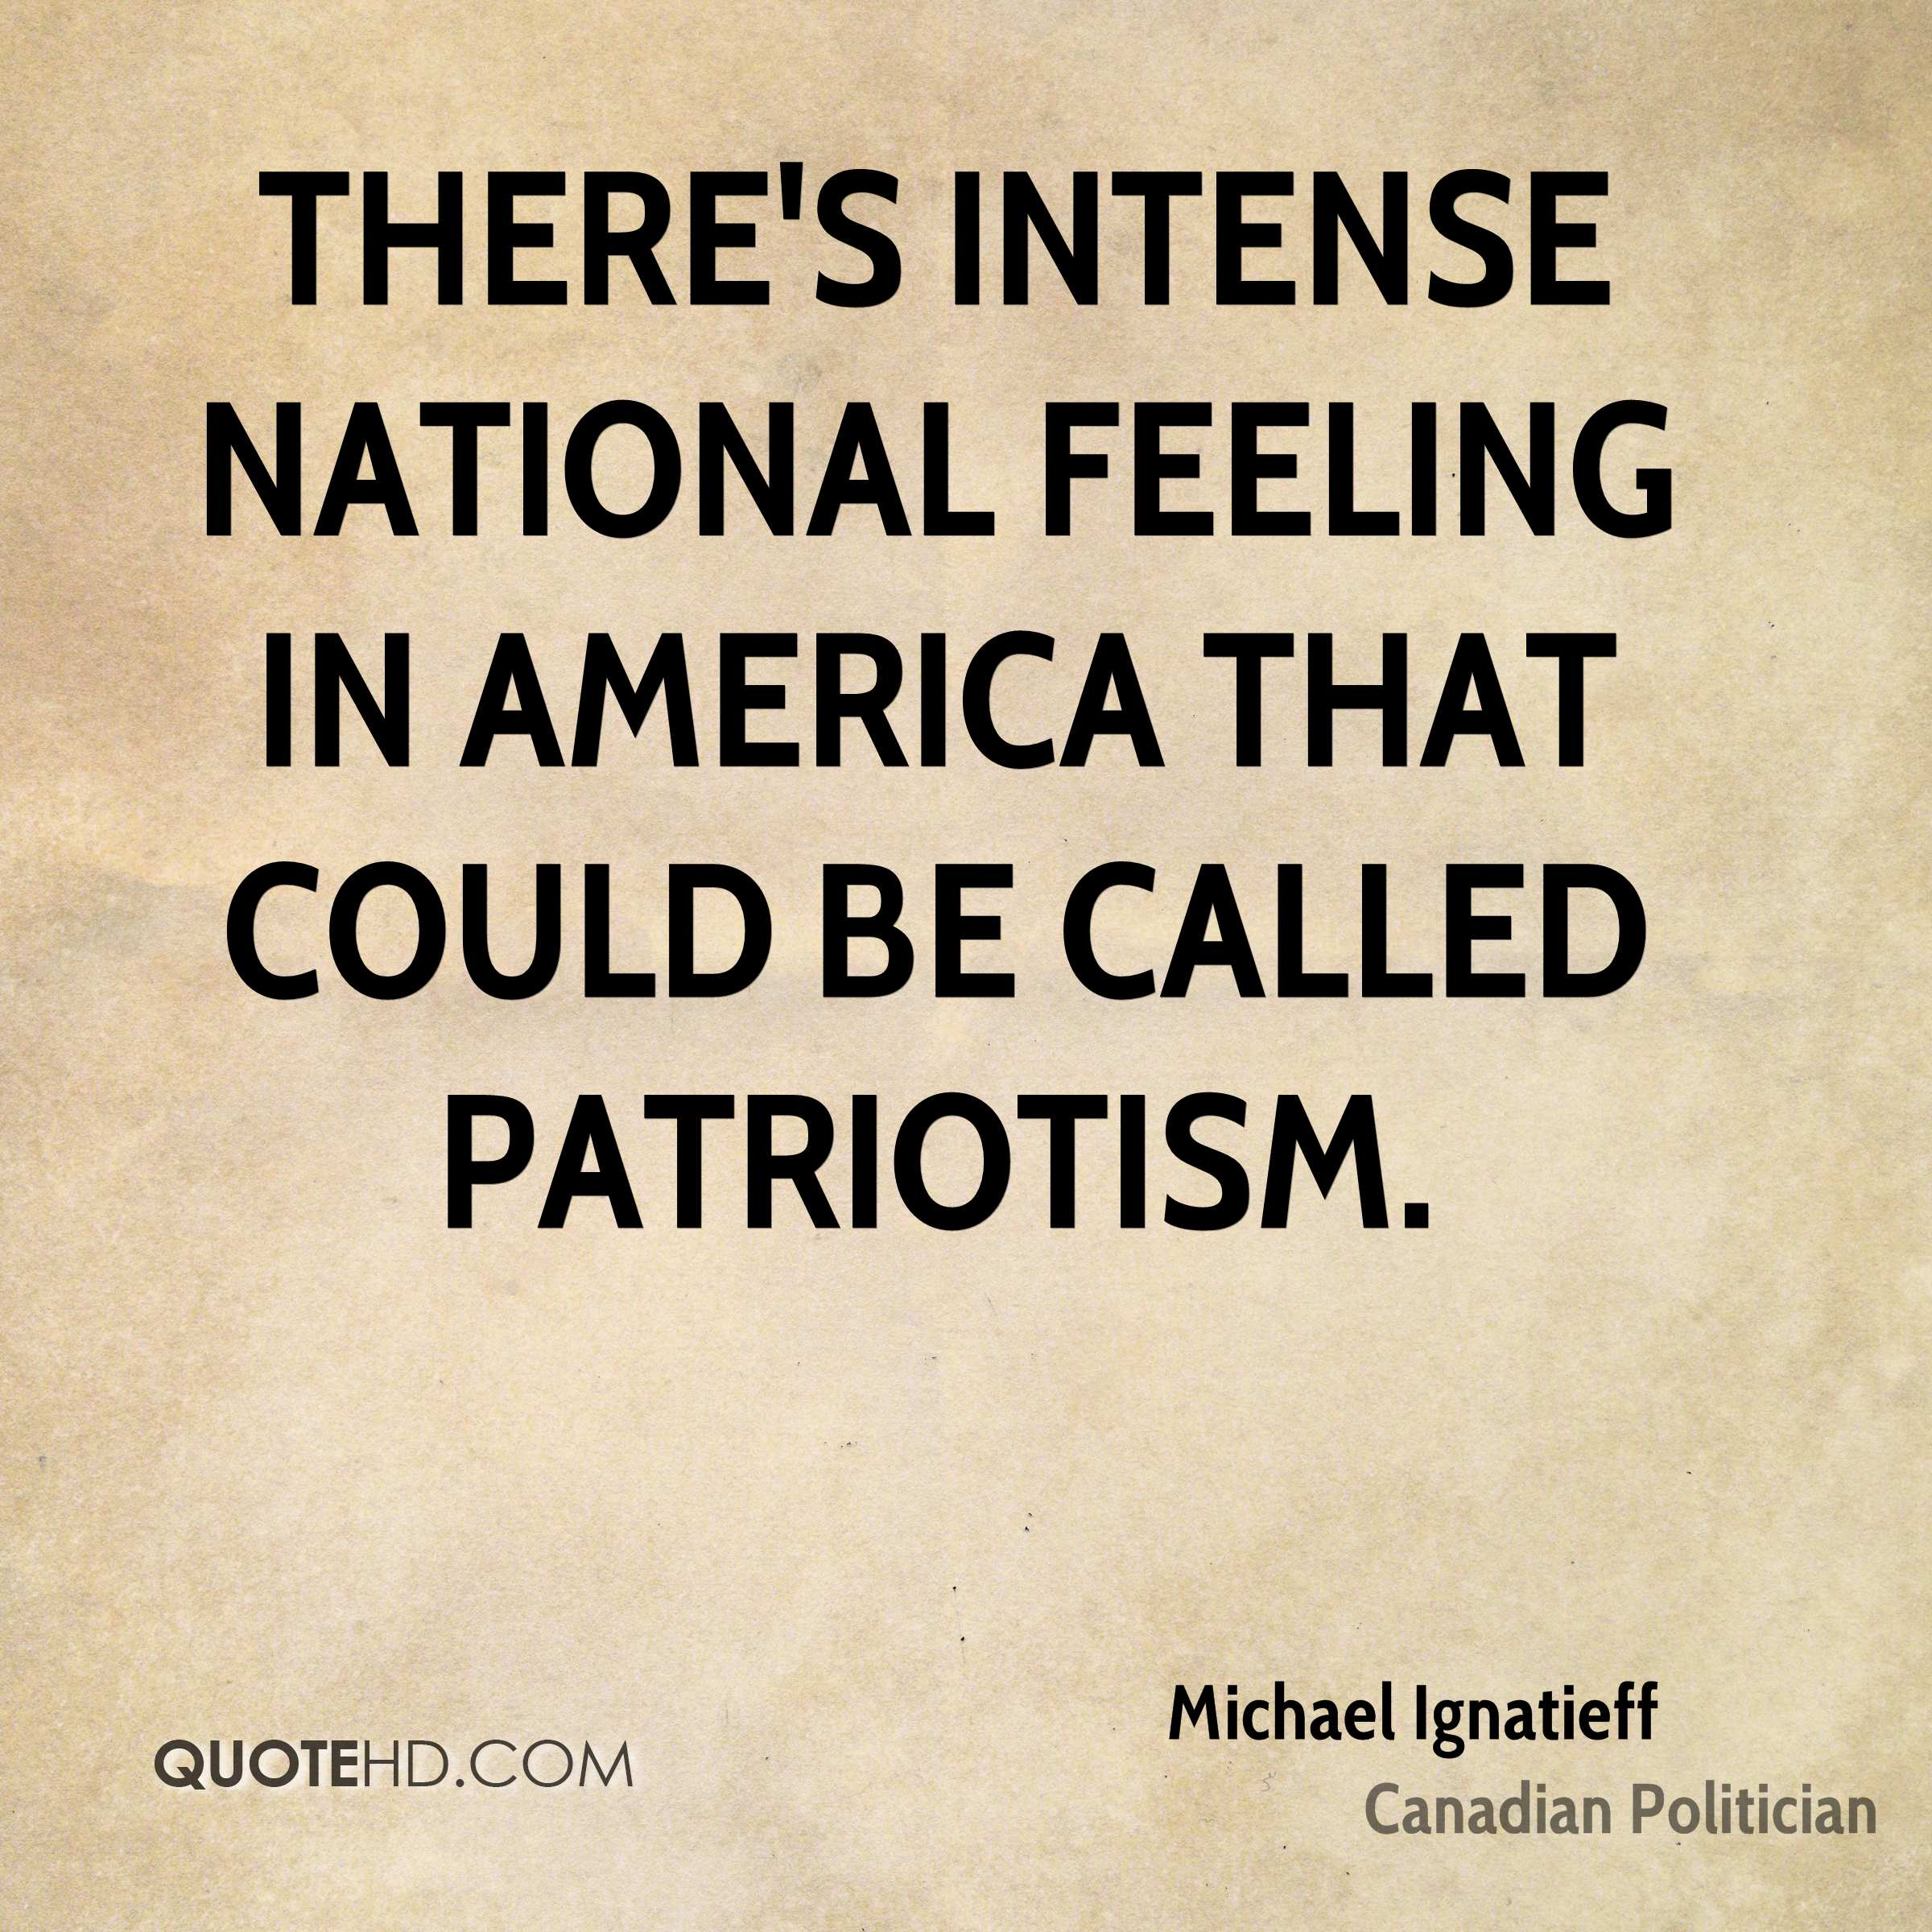 There's intense national feeling in America that could be called patriotism.